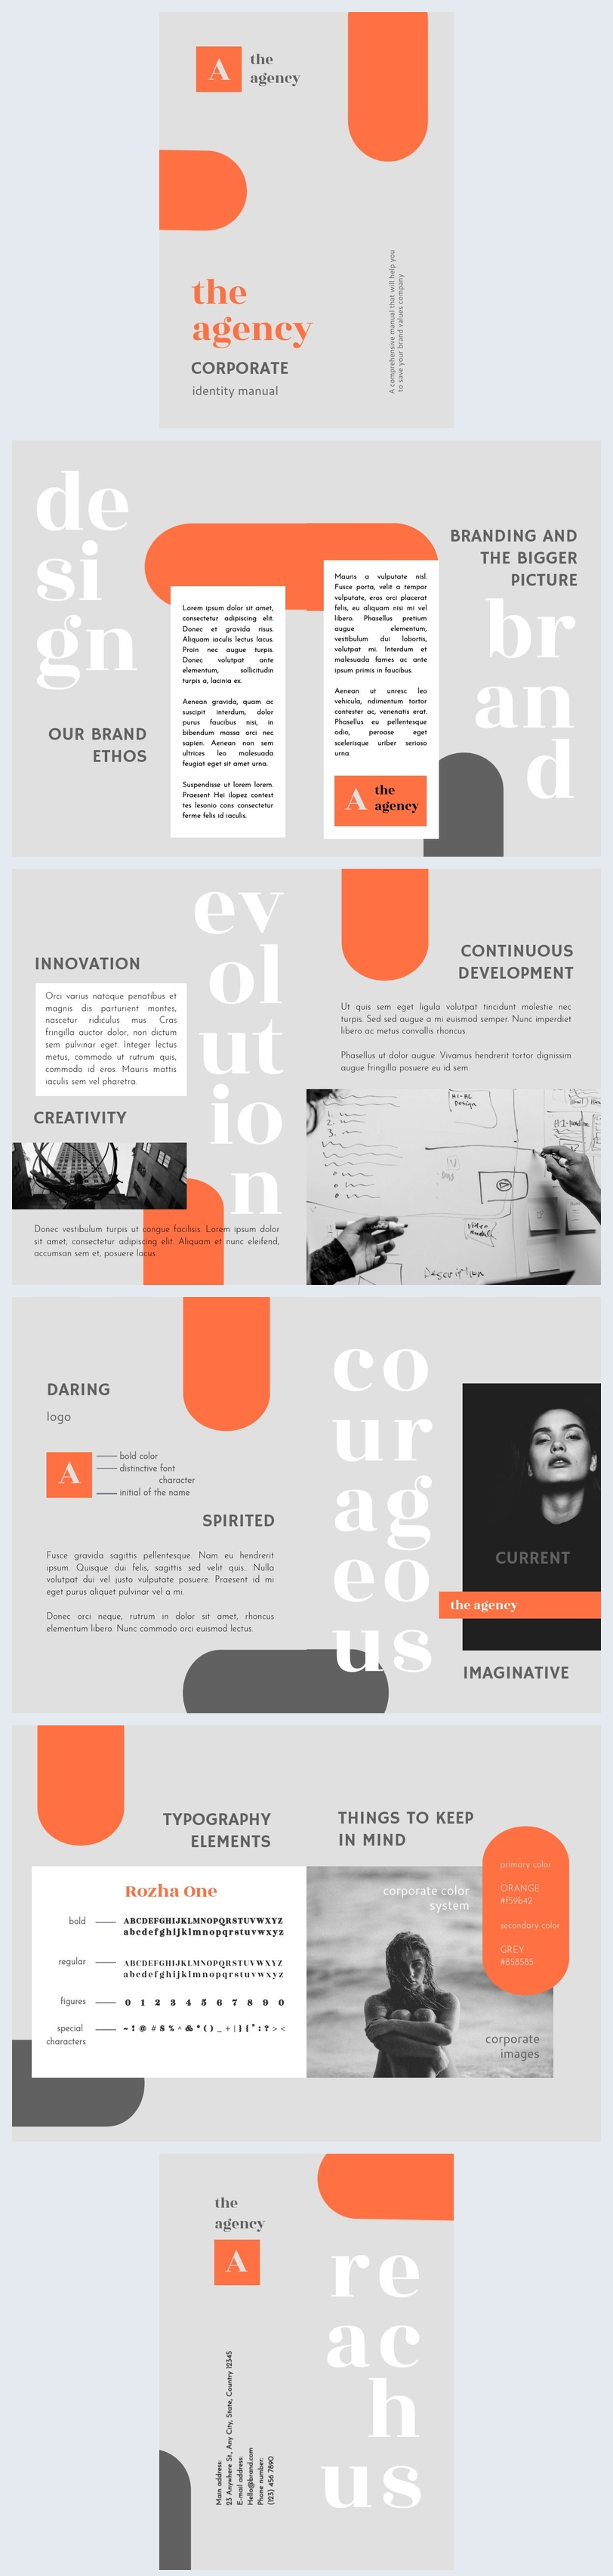 Corporate Identity Manual Template